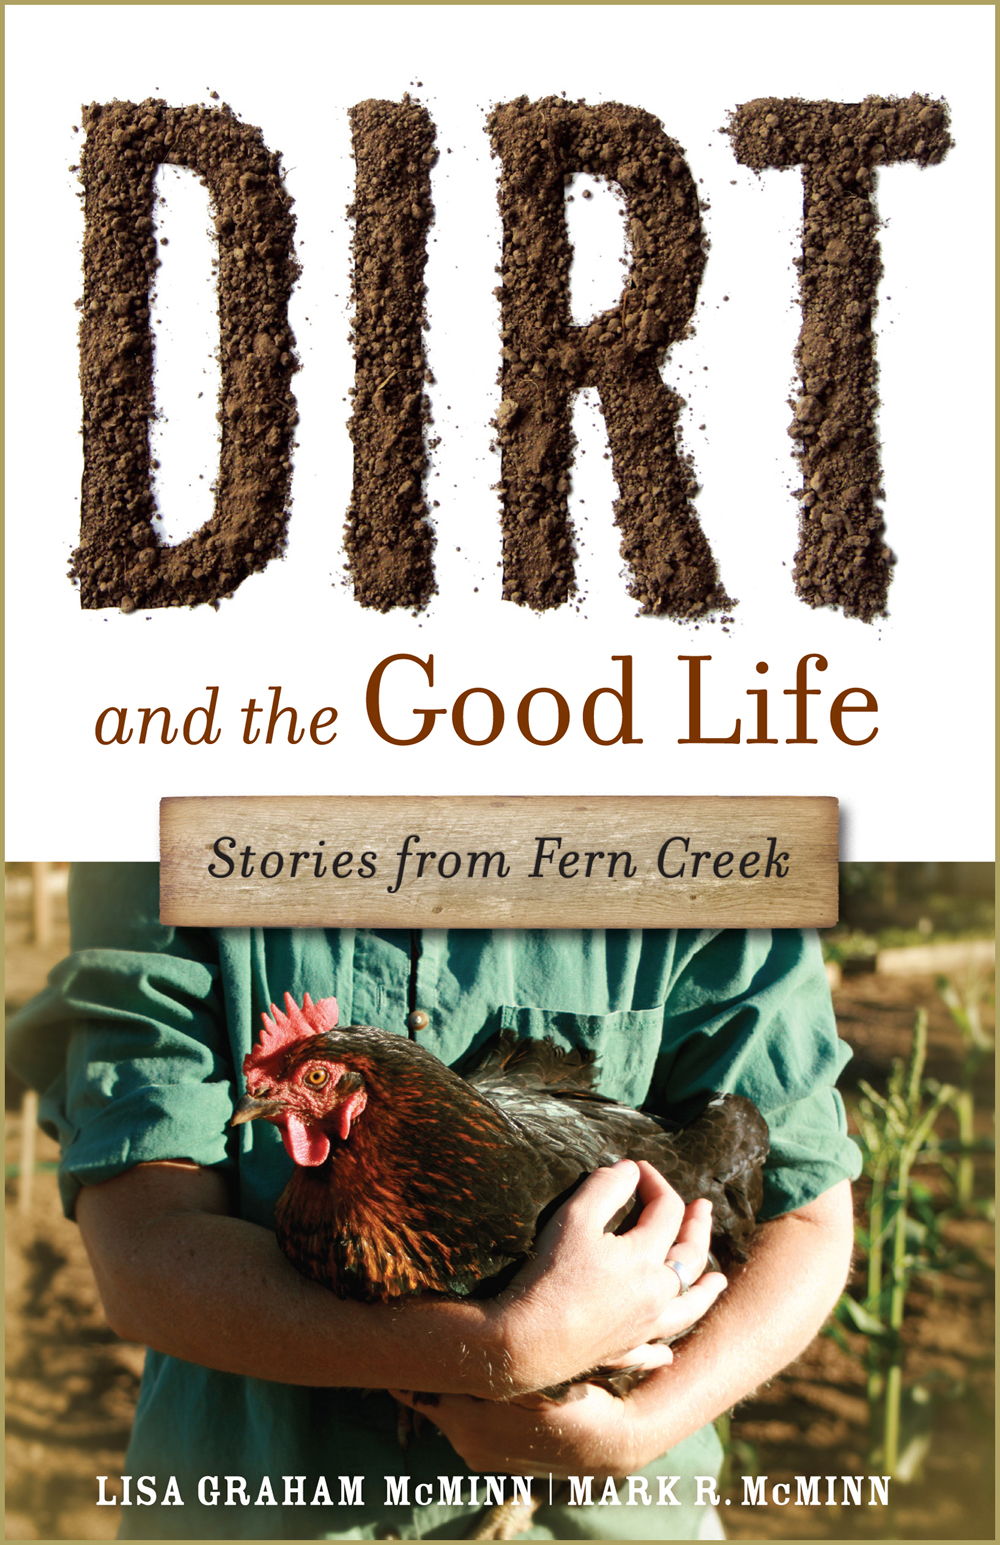 Quaker Oats Live: Book Review: Dirt & The Good Life